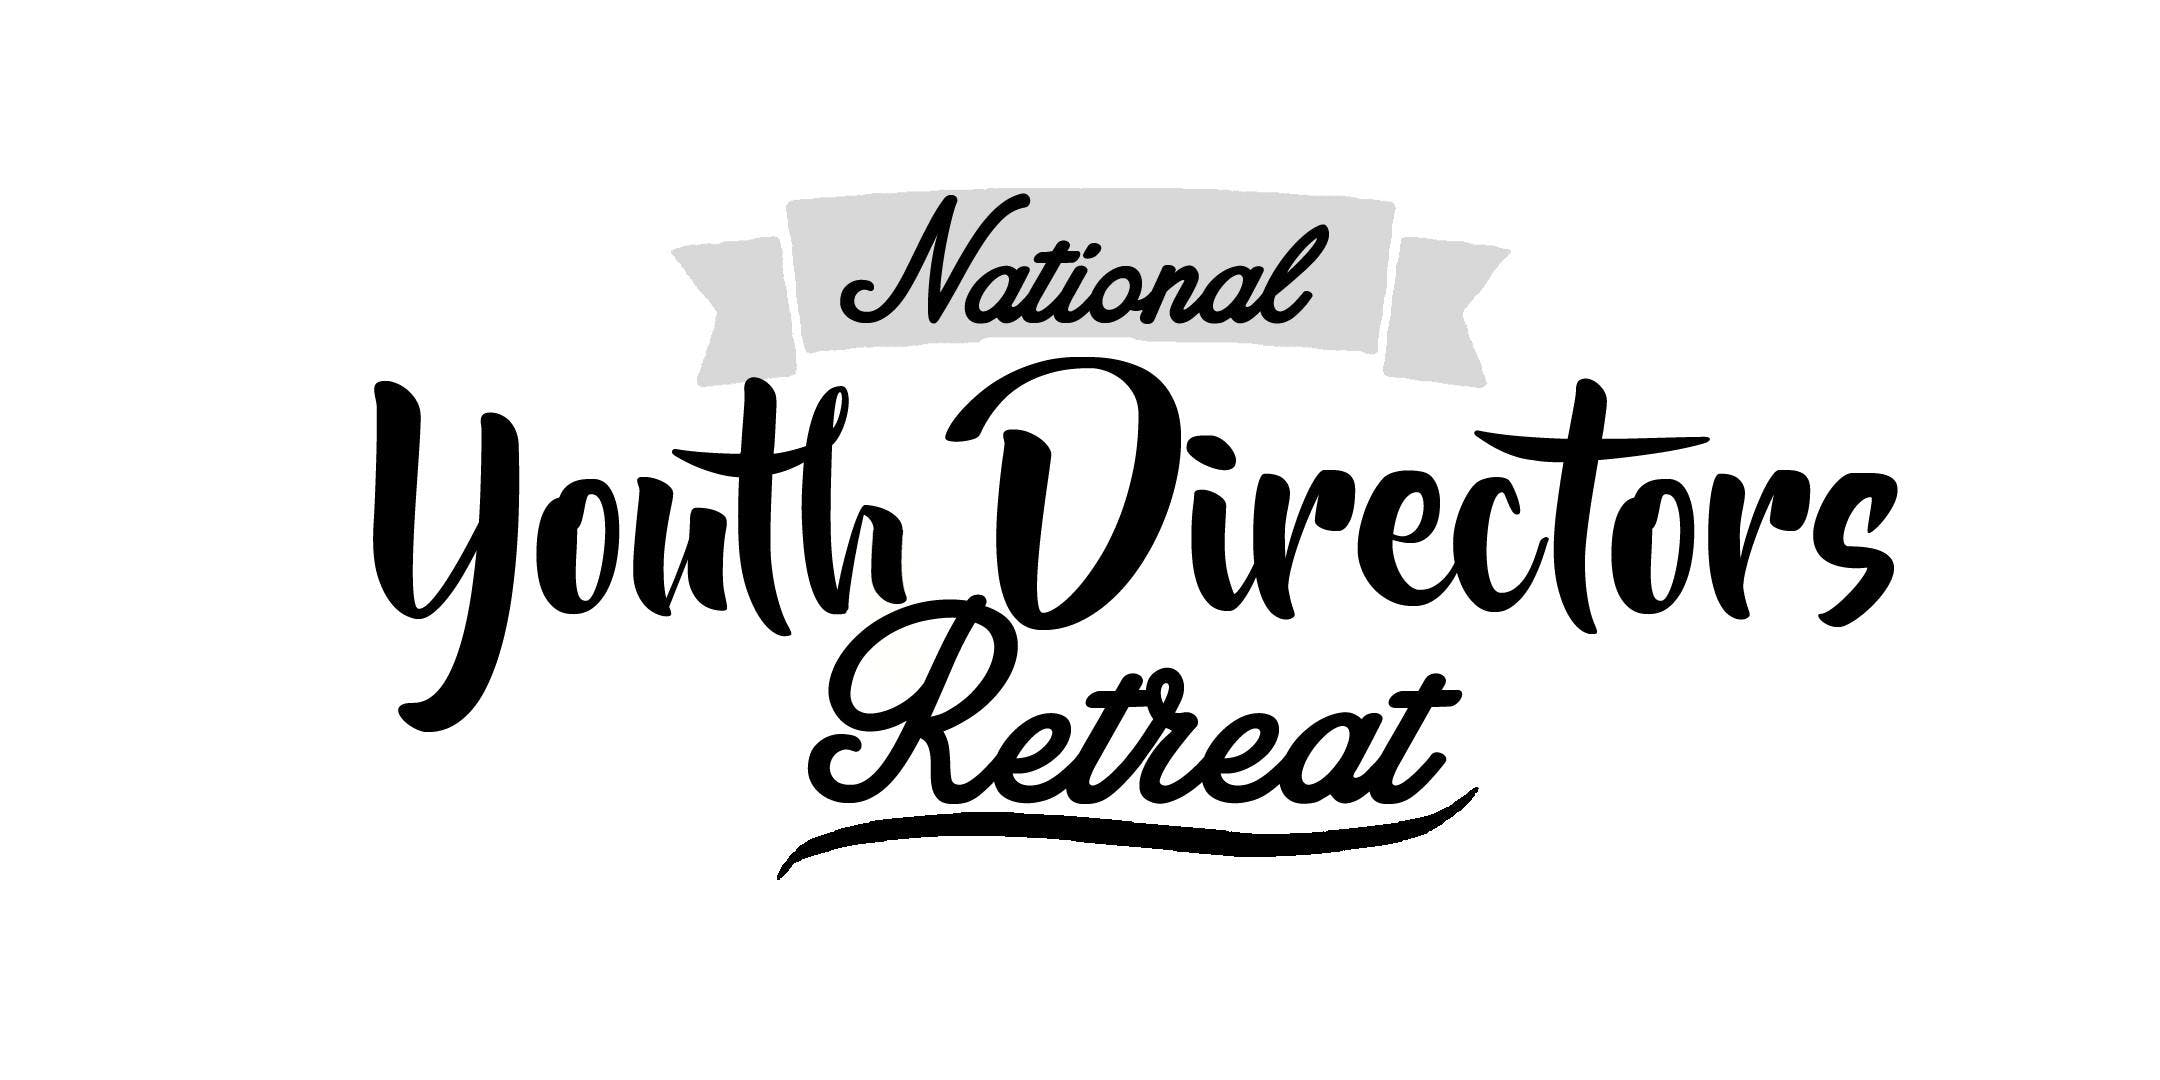 National Youth Directors Retreat